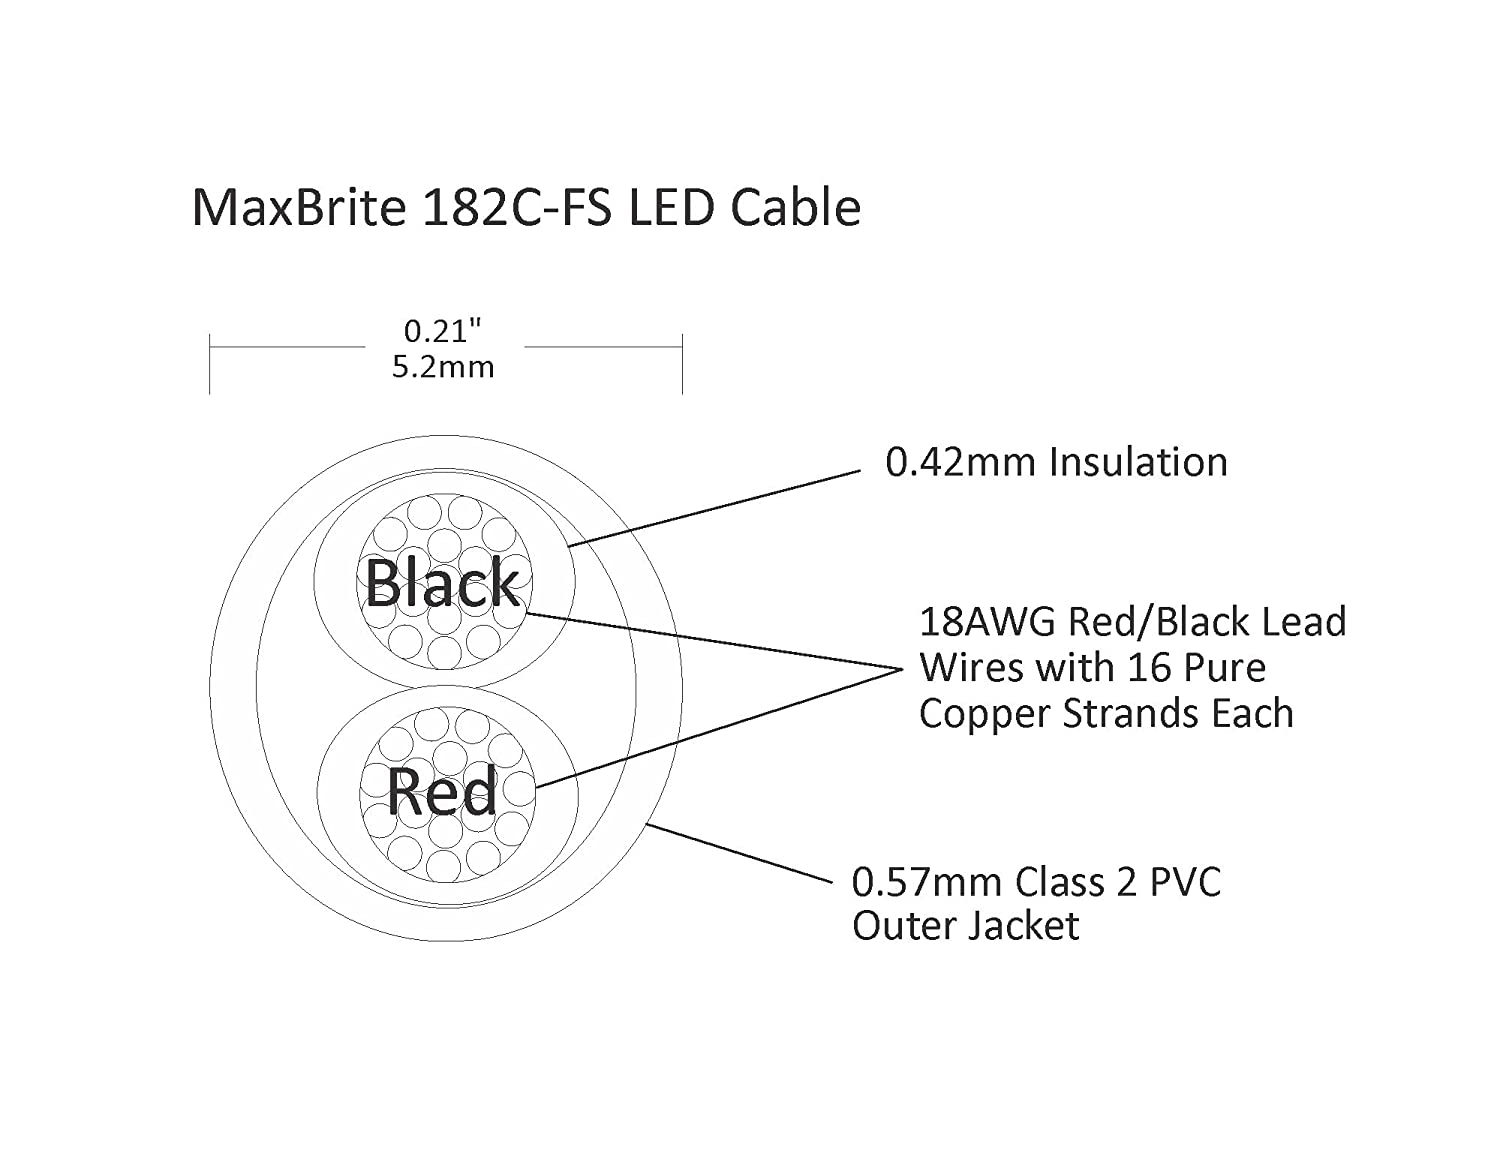 amazon com: 18awg low voltage led cable 2 conductor jacketed in-wall  speaker wire ul/cul class 2 (200 ft reel): home improvement